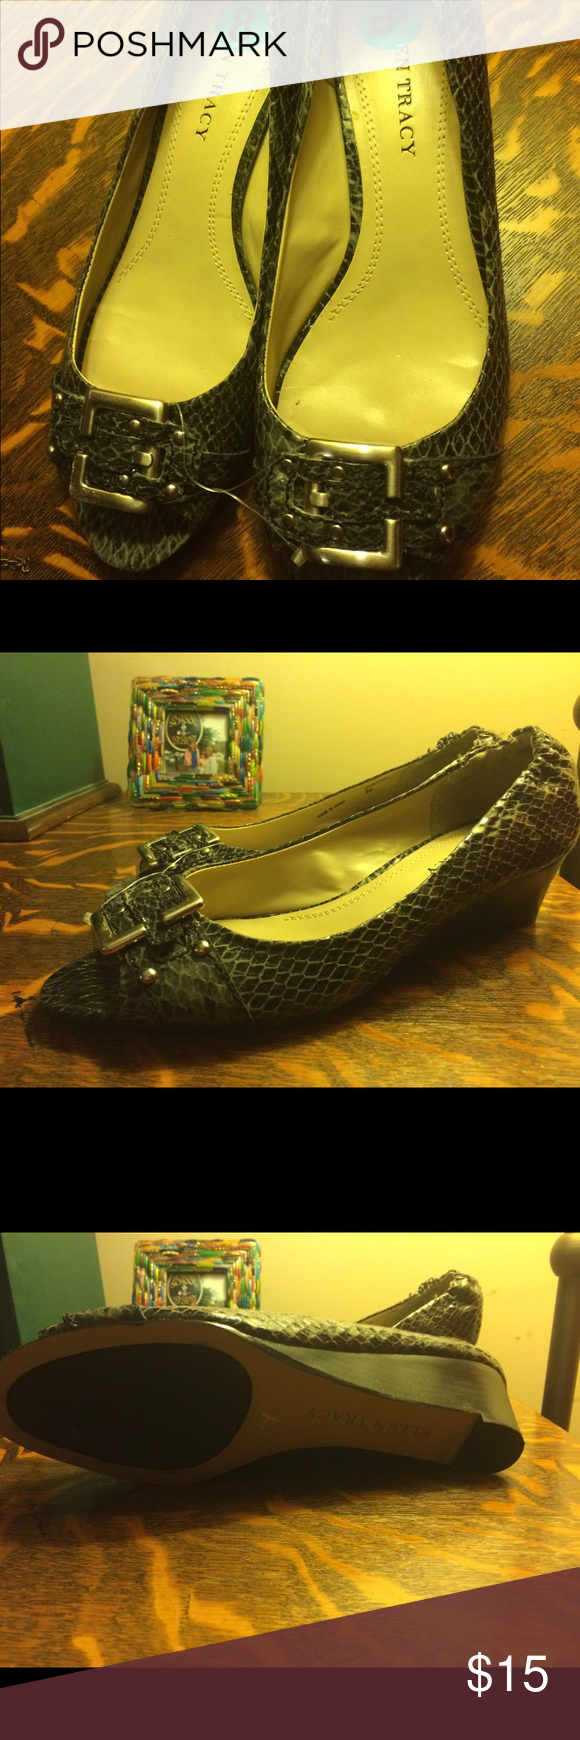 NWOT Ellen Tracy size 8 faux snakeskin wedges NWOT  Ellen Tracy faux snakeskin wedges with a one and a half inch heel and very cool silver buckle in the front Ellen Tracy Shoes Wedges